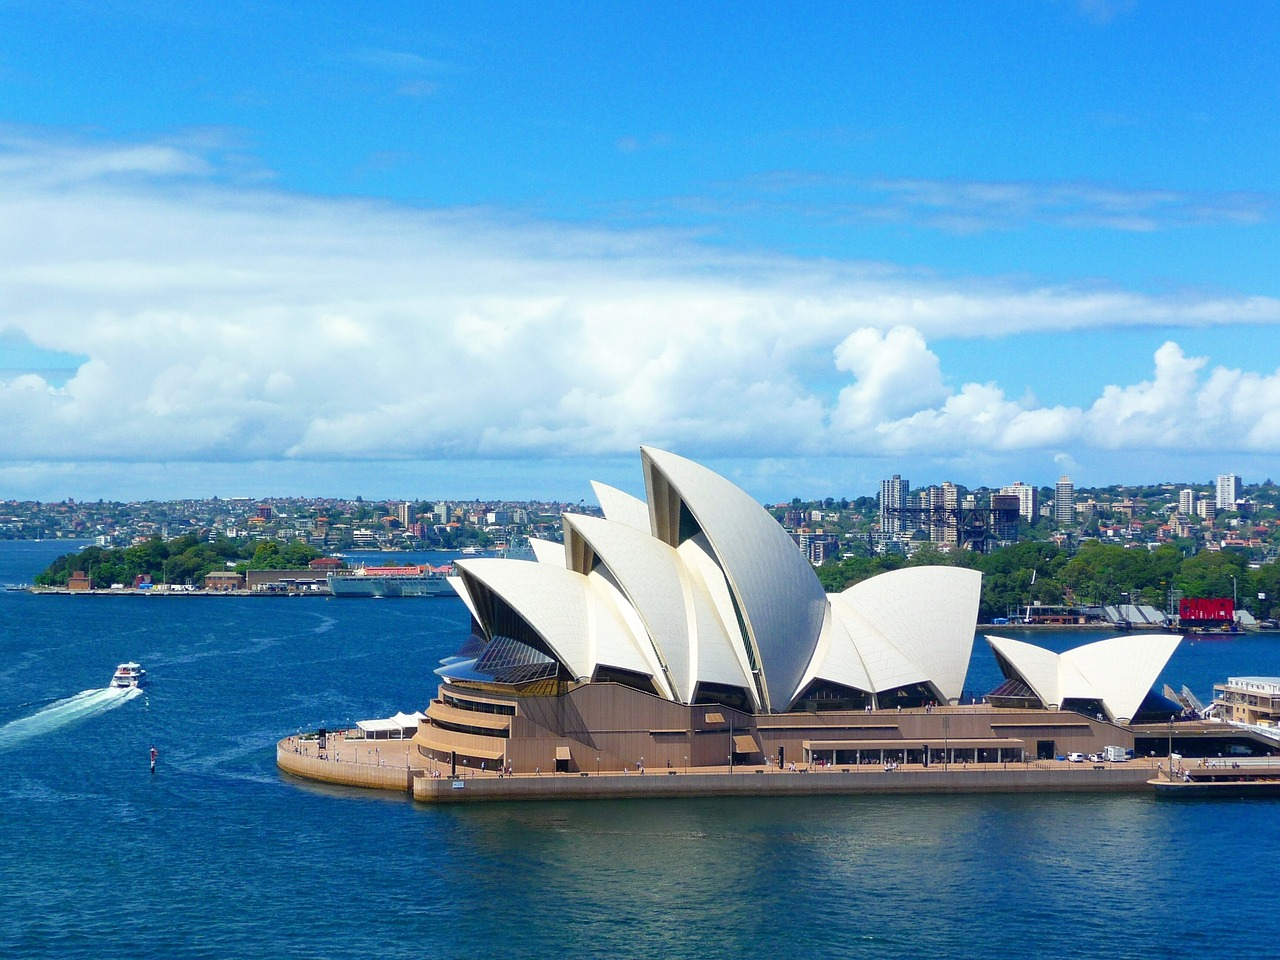 Is it Time to Emigrate? - Moving to Sydney, Australia